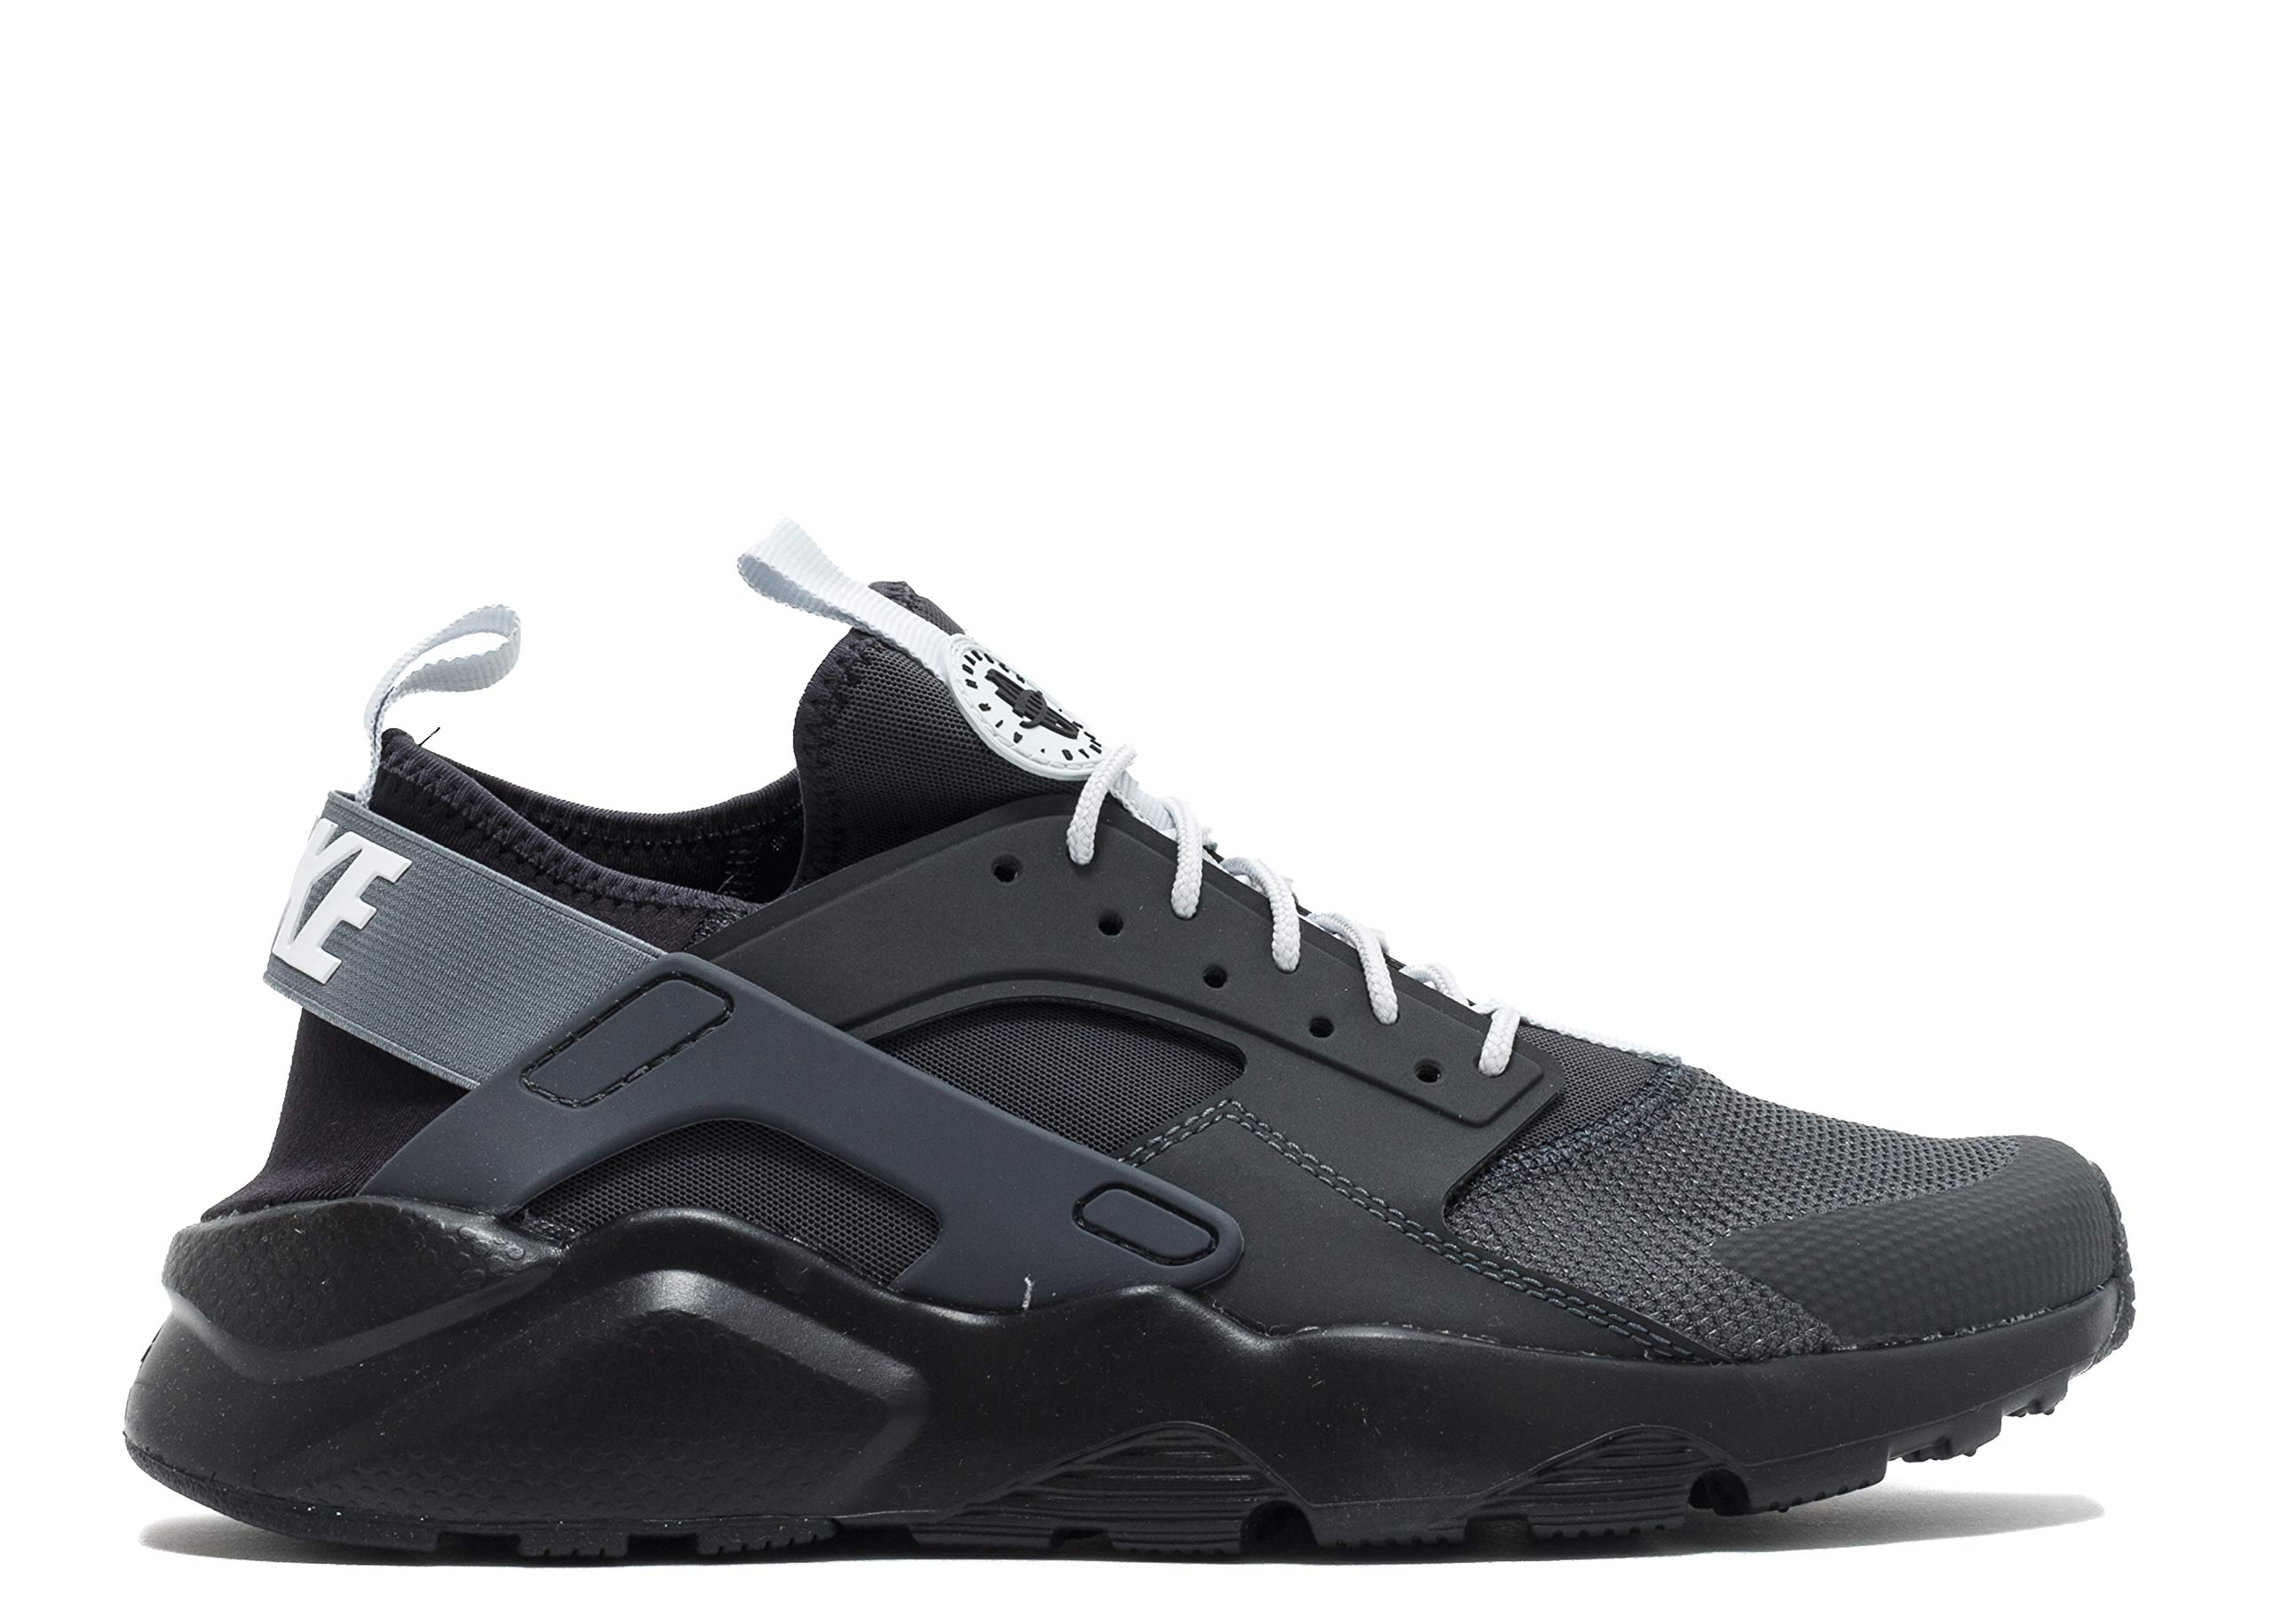 finest selection bef33 0456c Galleon - NIKE Mens Air Huarache Run Ultra Low, Anthracite Black-Black-White,  Size 11.5